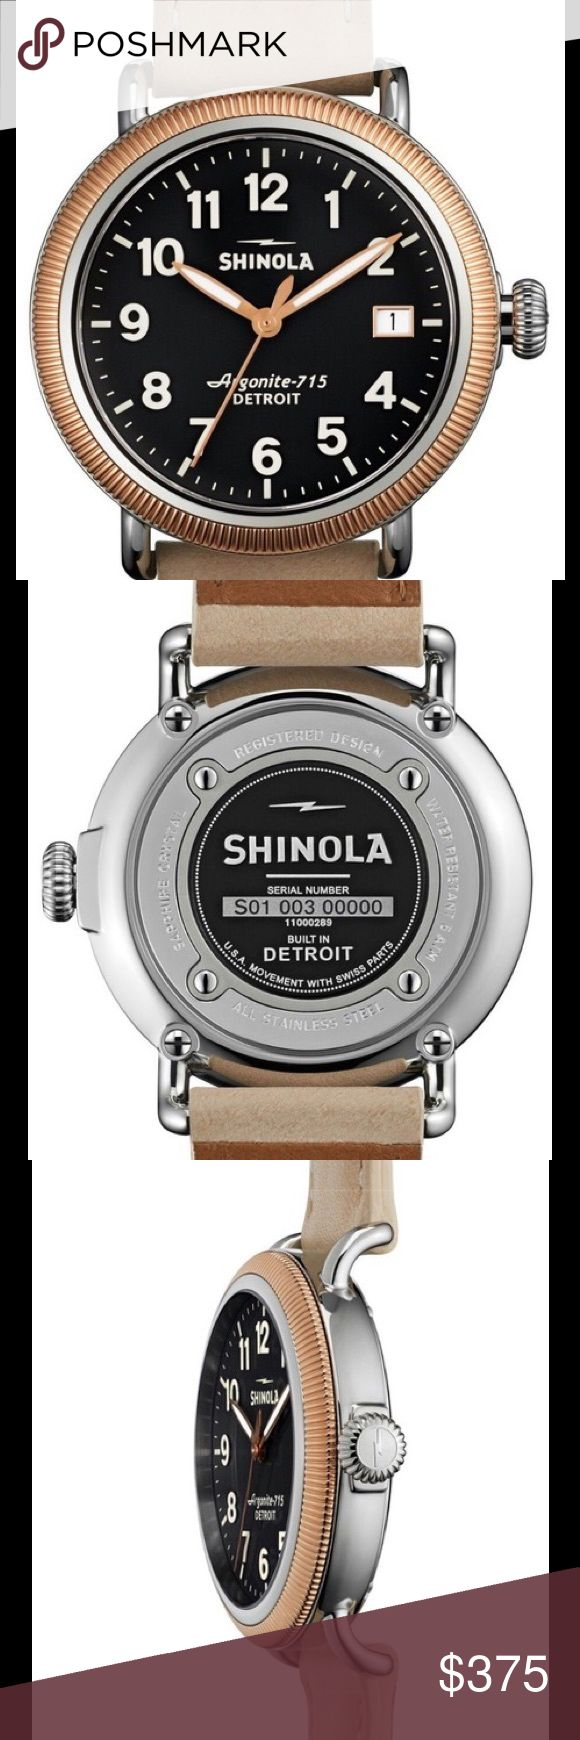 Shinola Runwell Coin Edge Rose Gold 38mm Watch With a coin edge of PVD Rose Gold, this timepiece is a small twist on the classic Runwell style. Featuring a leather strap and black dial, it is backed up with the highly accurate power of the Detroit-built Argonite 715 quartz movement making this marriage of style and substance a definite winner. Double curve sapphire crystal. Handmade in Detroit from Swiss-made parts. PRICE IS FIRM Shinola Accessories Watches